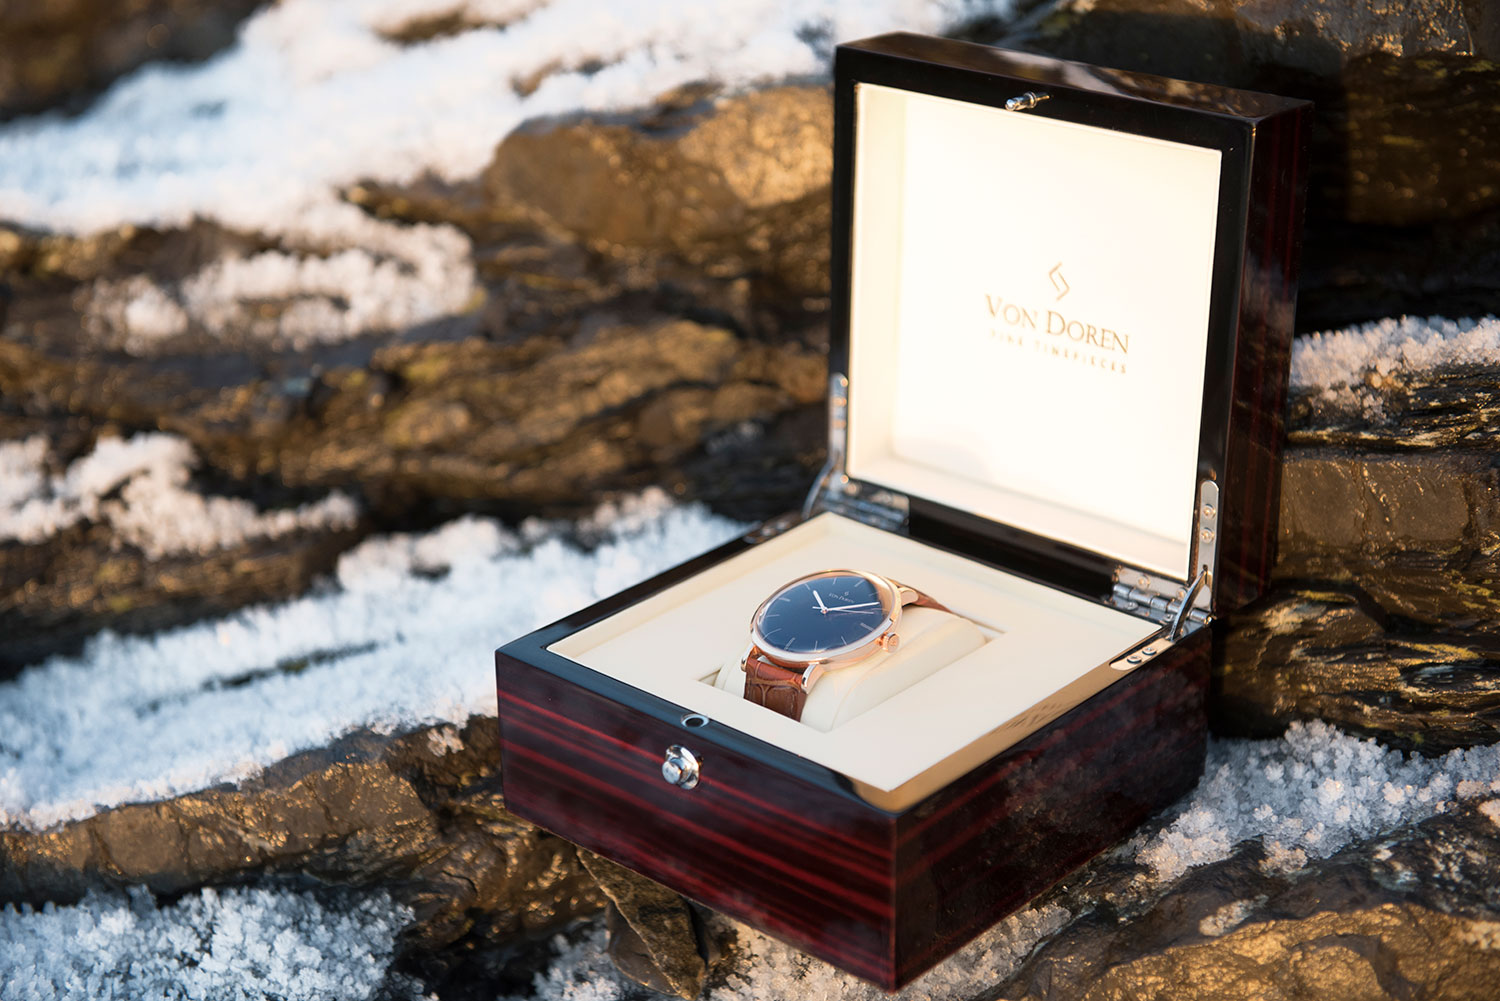 Von Doren black rose gold in box